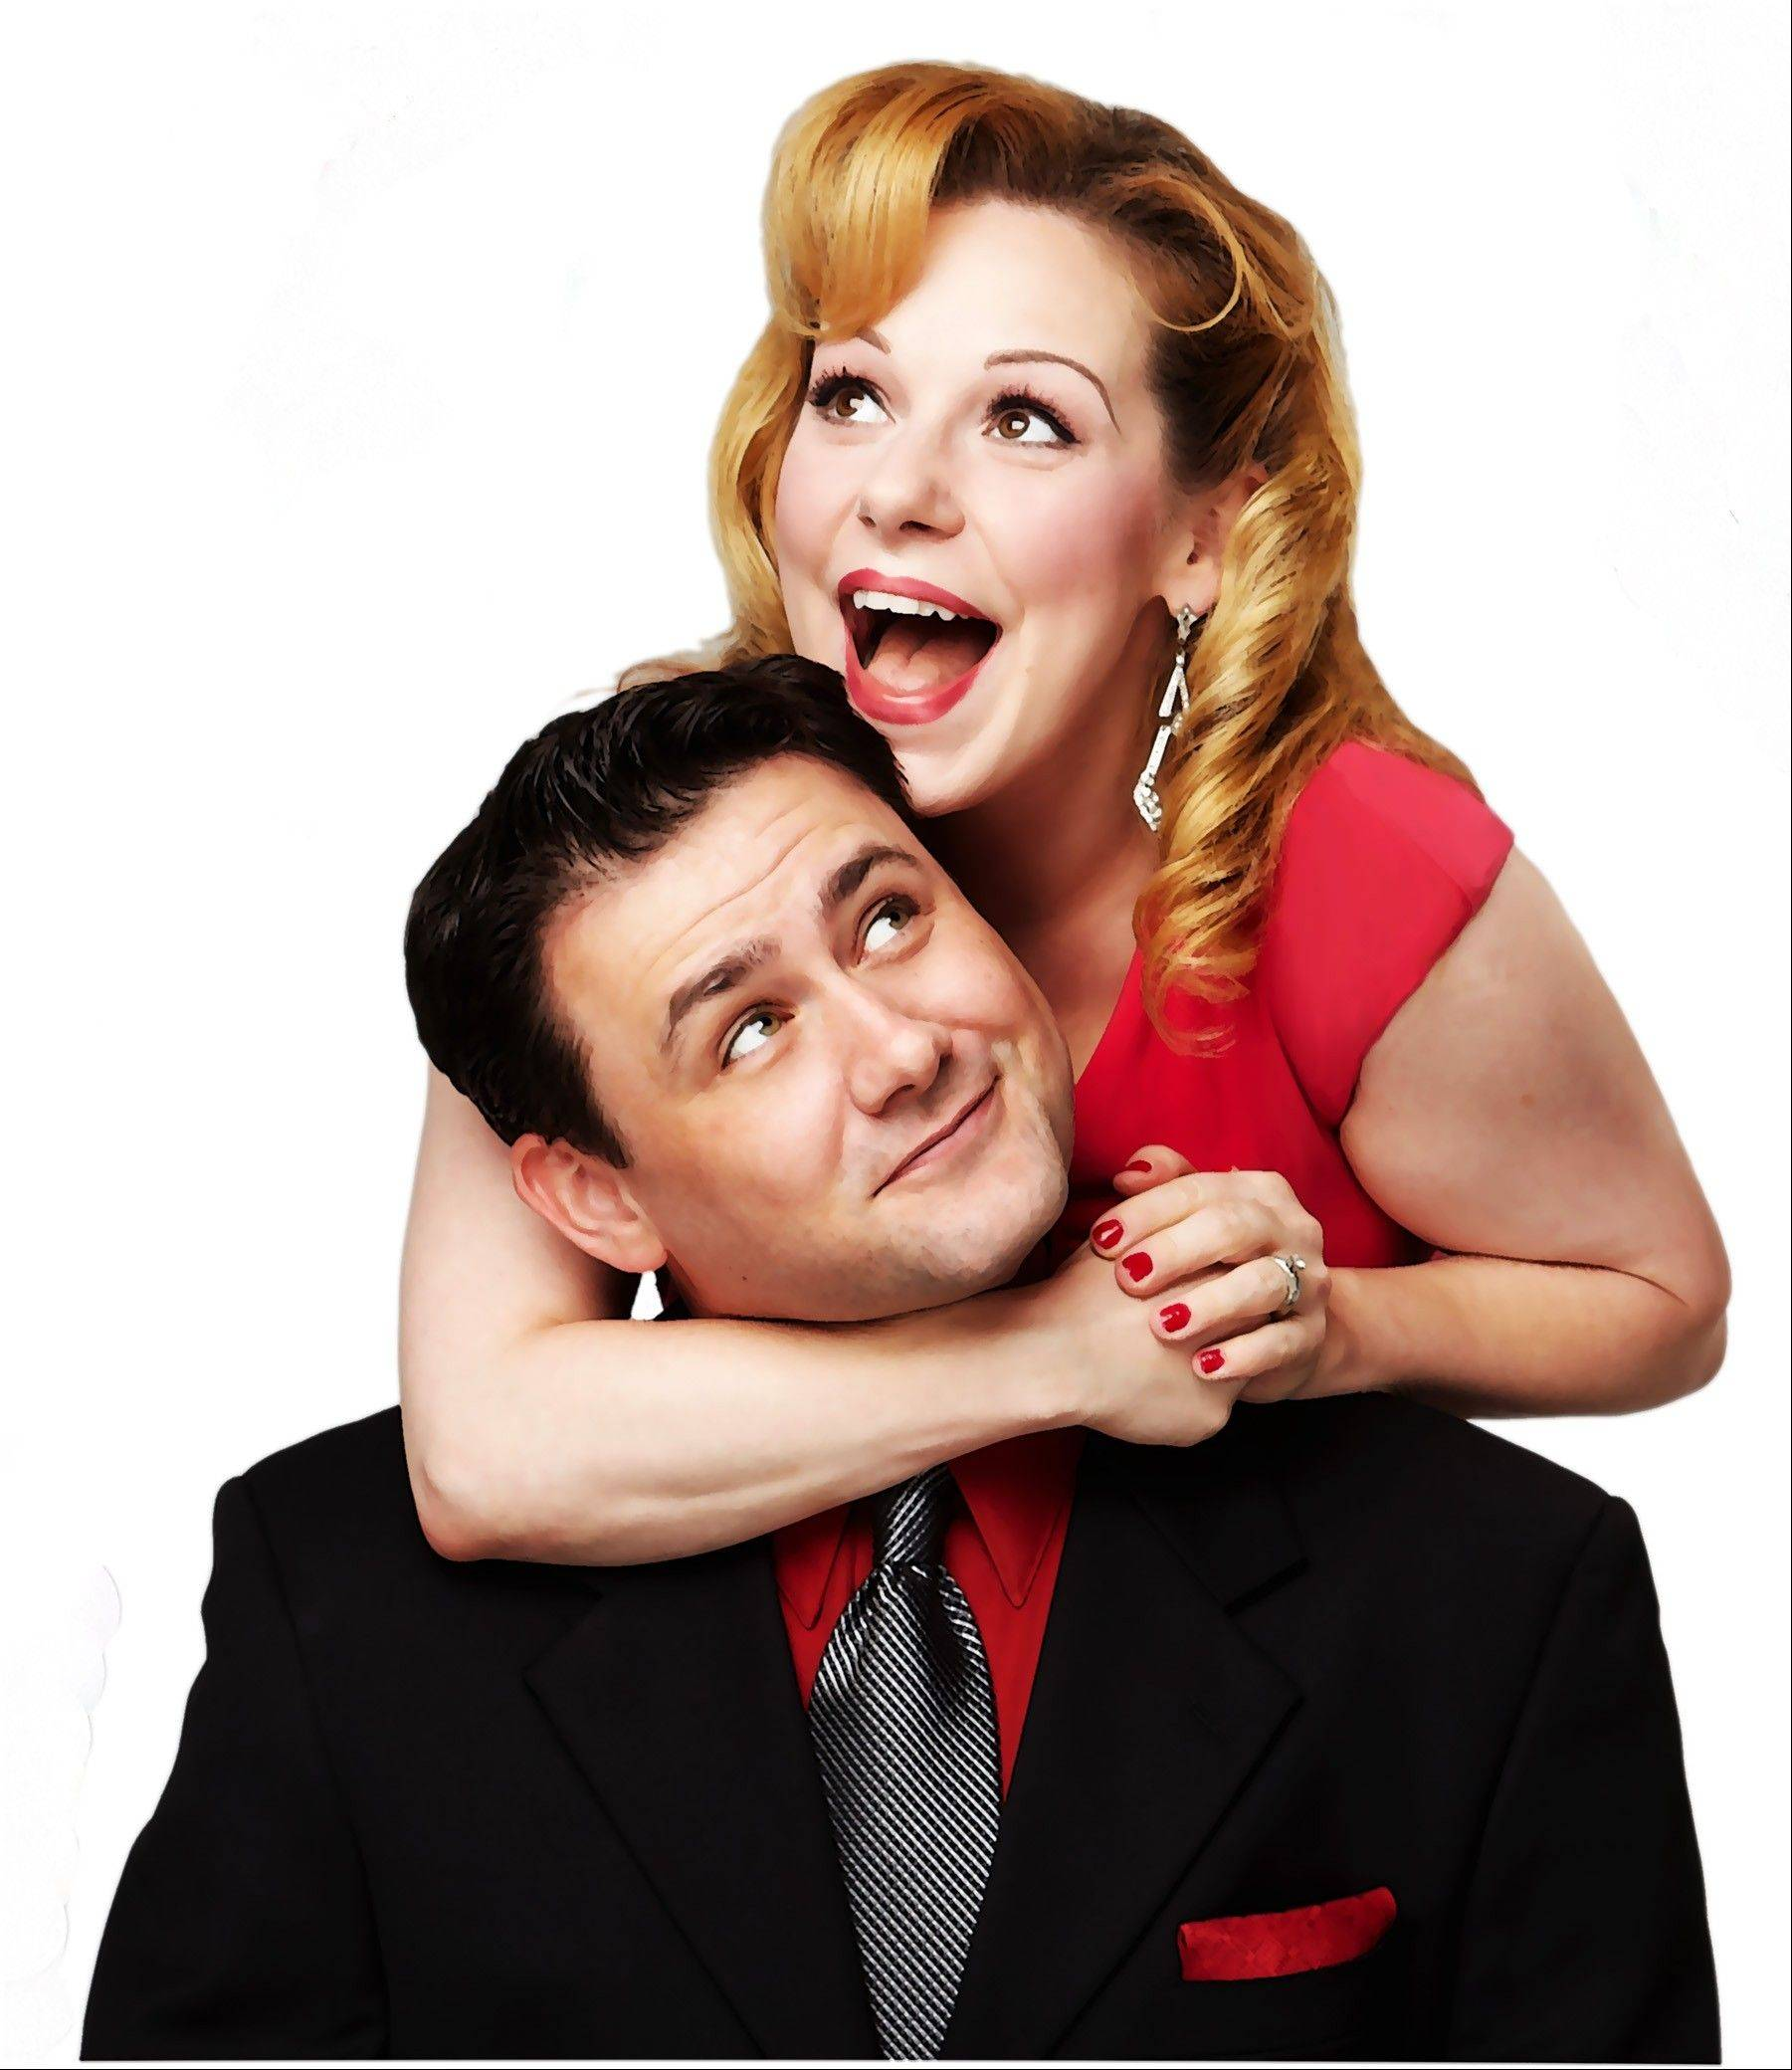 "Married musical theater veterans Michael Ingersoll (""Jersey Boys"" and the vocal group Under The Streetlamp) and Angela Ingersoll (Drury Lane's ""The 39 Steps"") bring their show ""My Baby Just Cares For Me"" to Northlight Theatre Monday, Oct. 1 and Tuesday, Oct. 2."